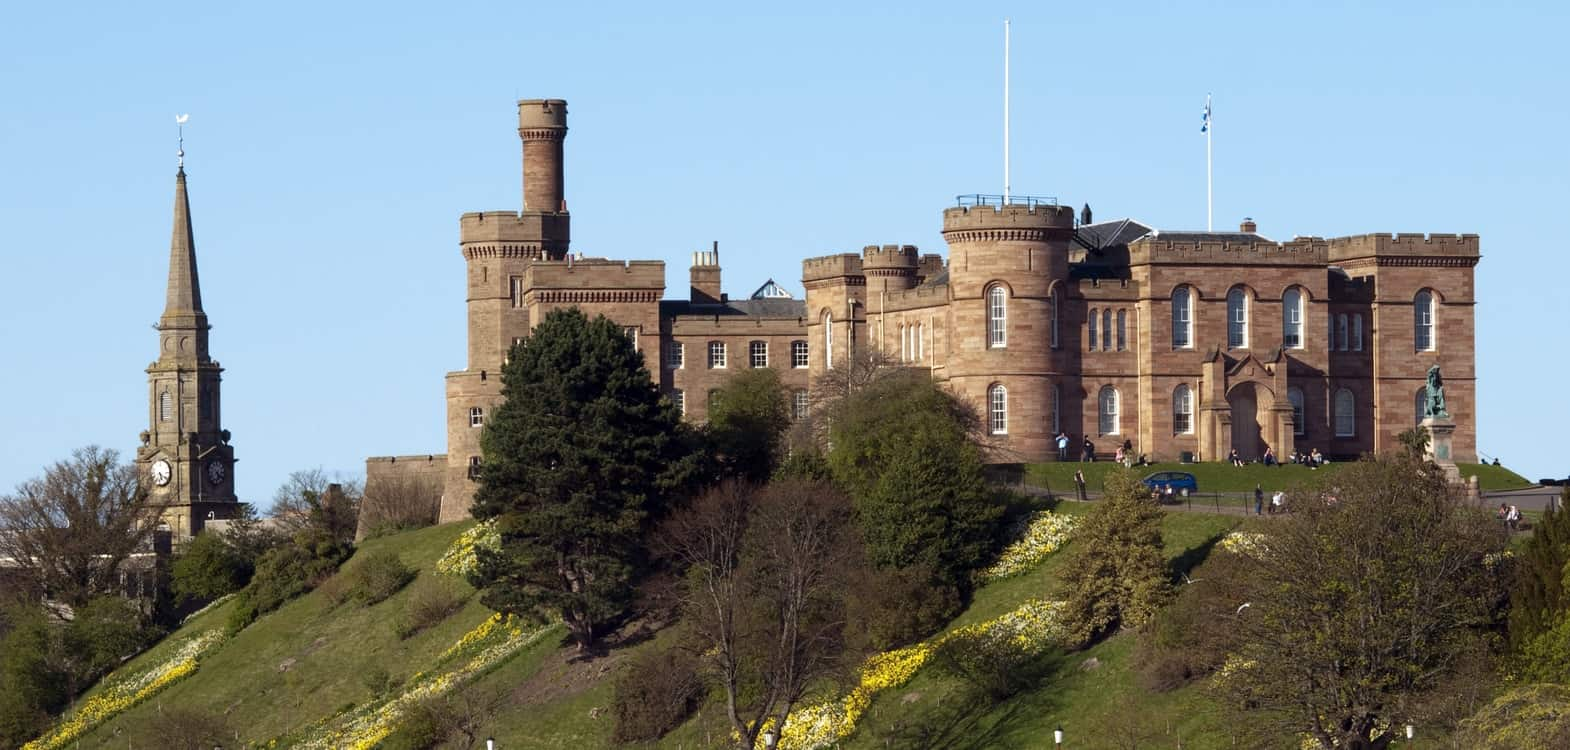 View of Inverness Castle on Castle Hill in Inverness with a blue sky background and slopes with daffodils